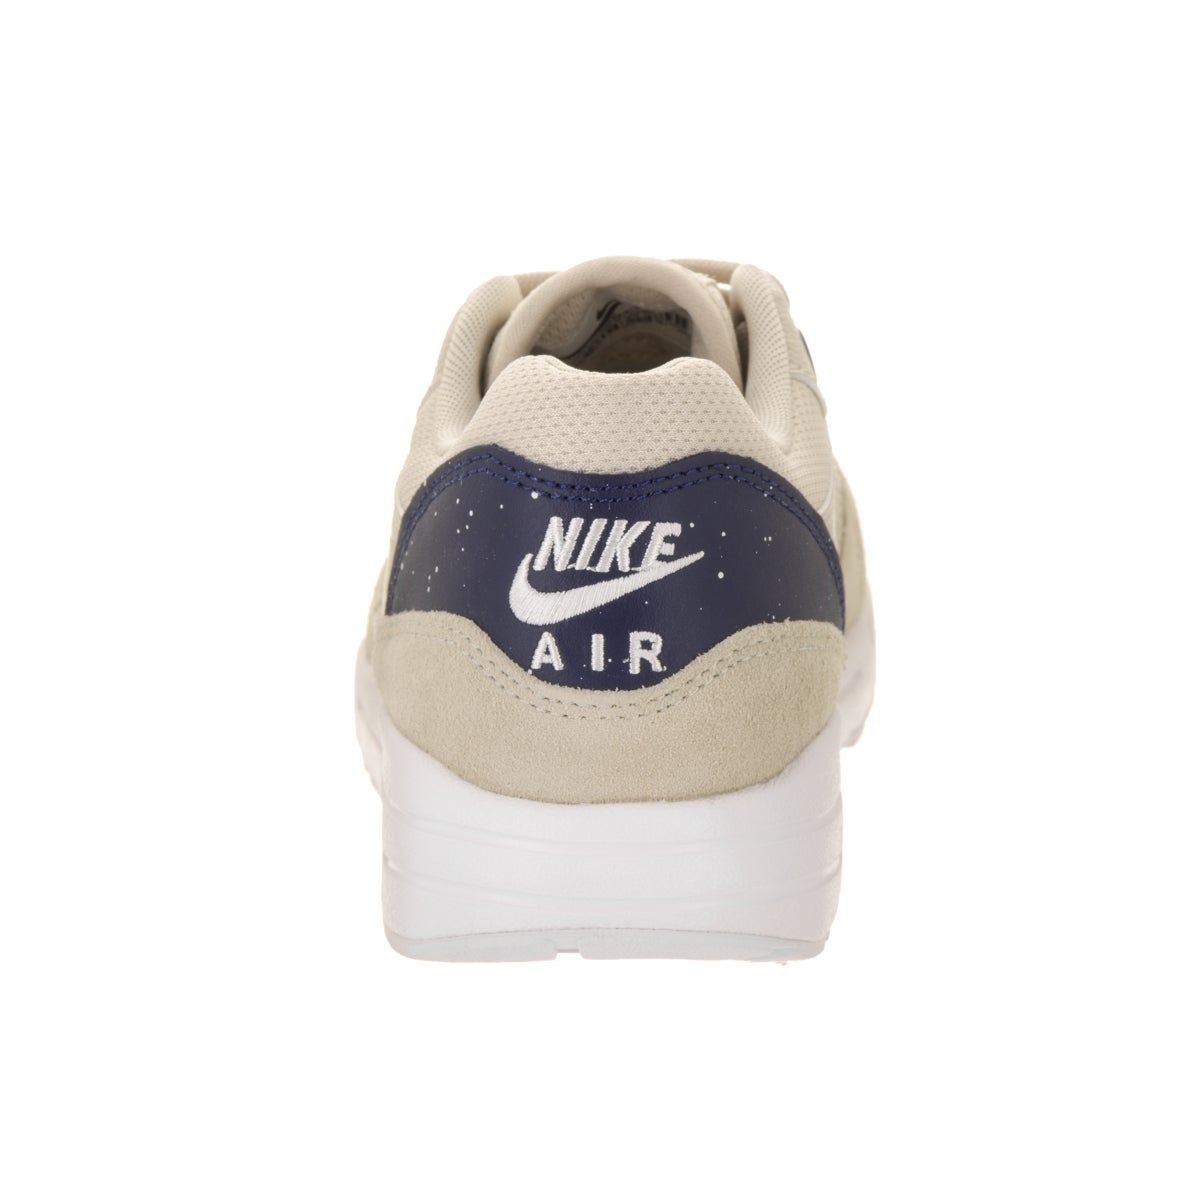 Nike Women's Air Max 1 Ultra 2.0 Beige Suede Running Shoes